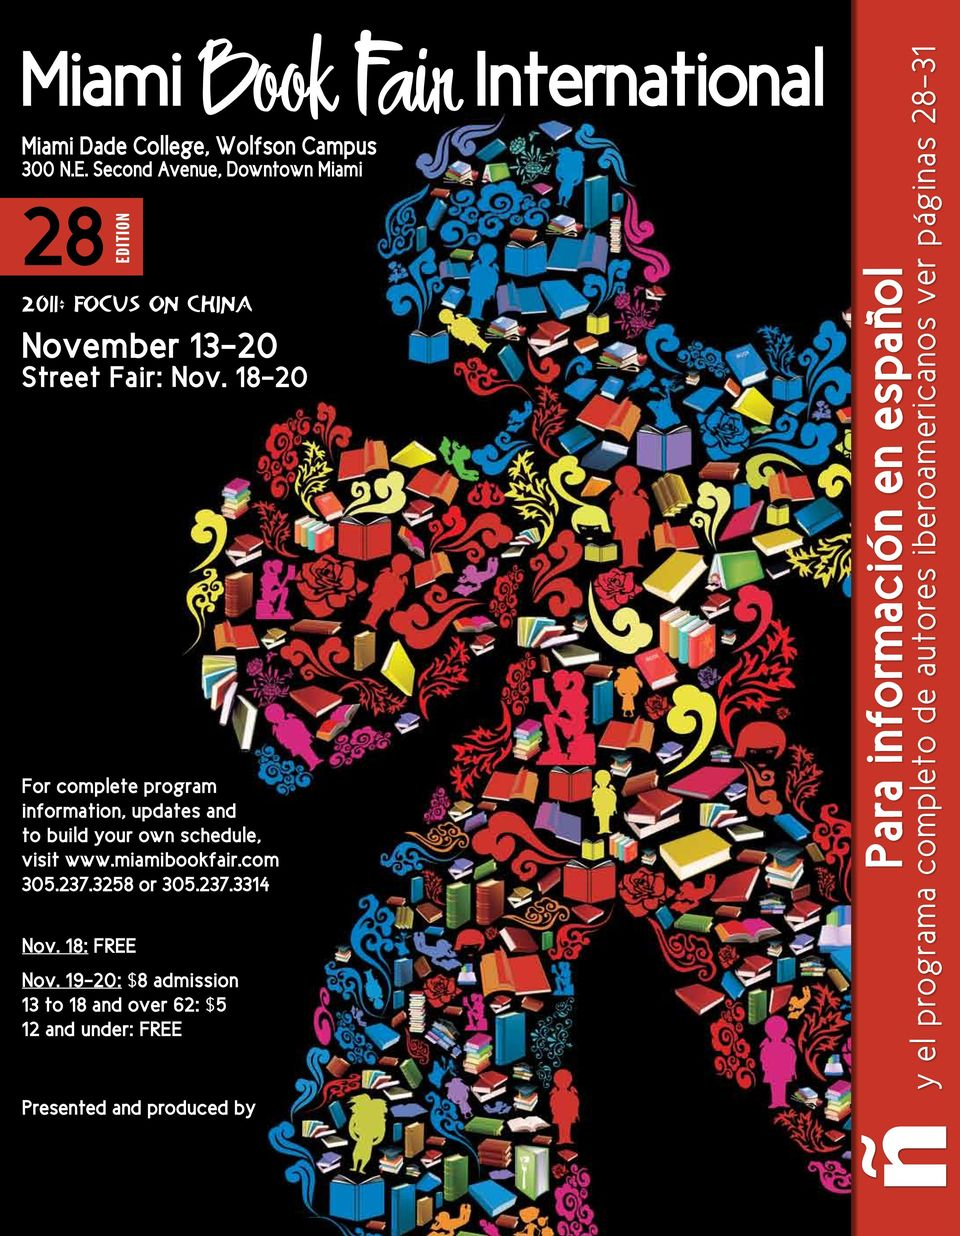 18-20 For complete program information, updates and to build your own schedule, visit www.miamibookfair.com 305.237.